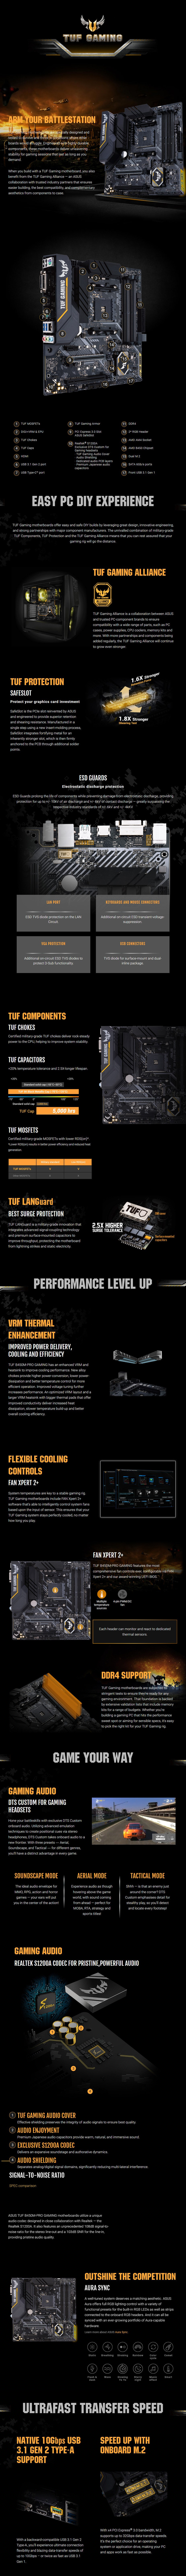 ASUS TUF B450M-PRO GAMING AM4 Micro-ATX Motherboard - Overview 1